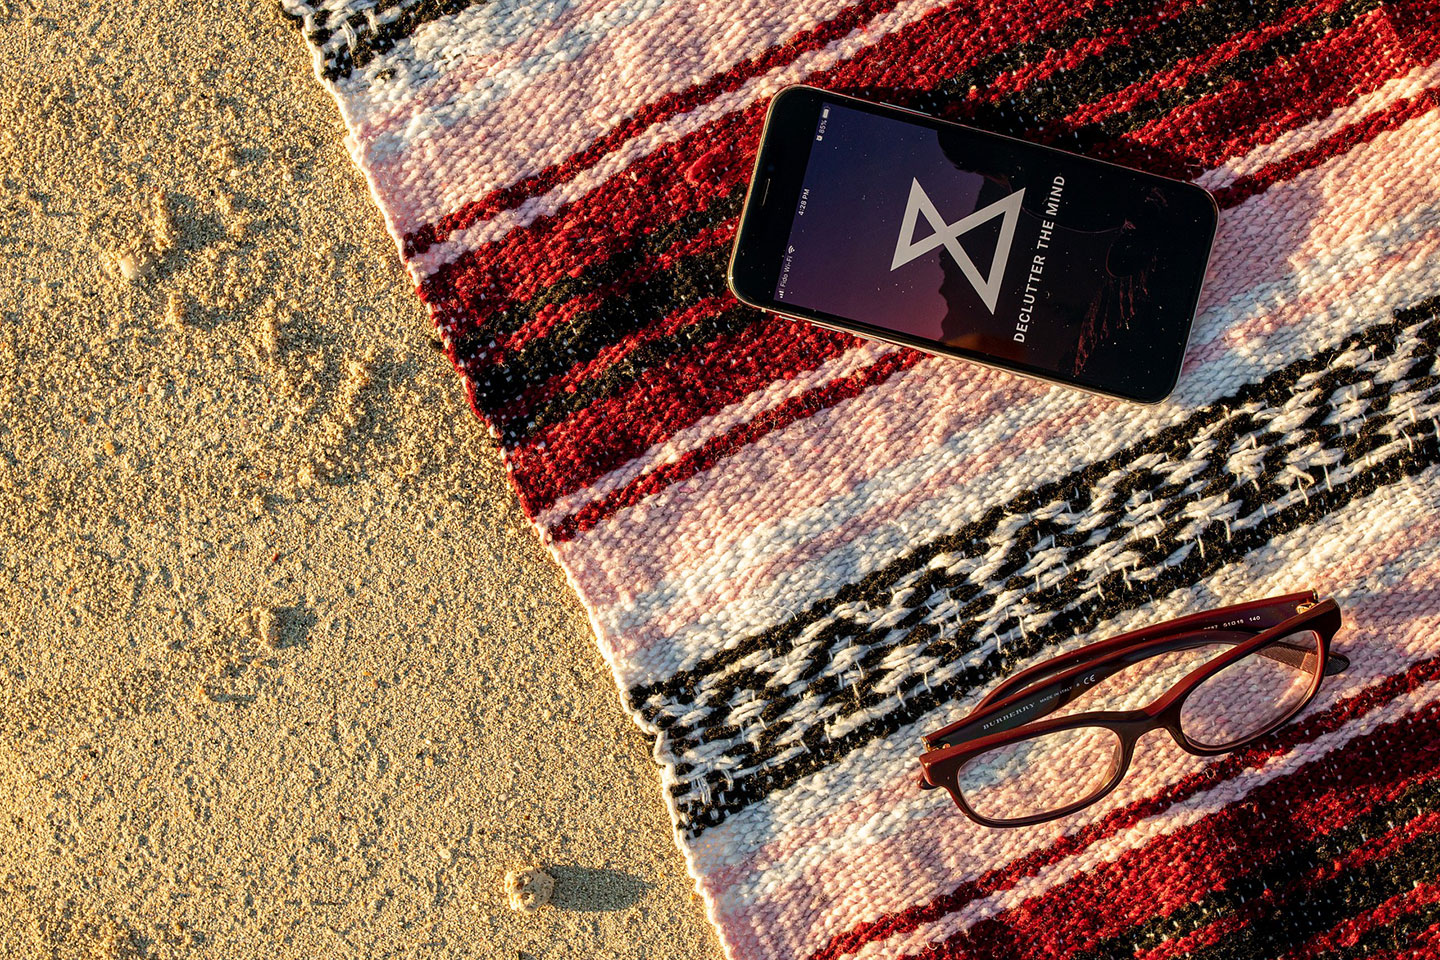 Smartphone on towel at the beach